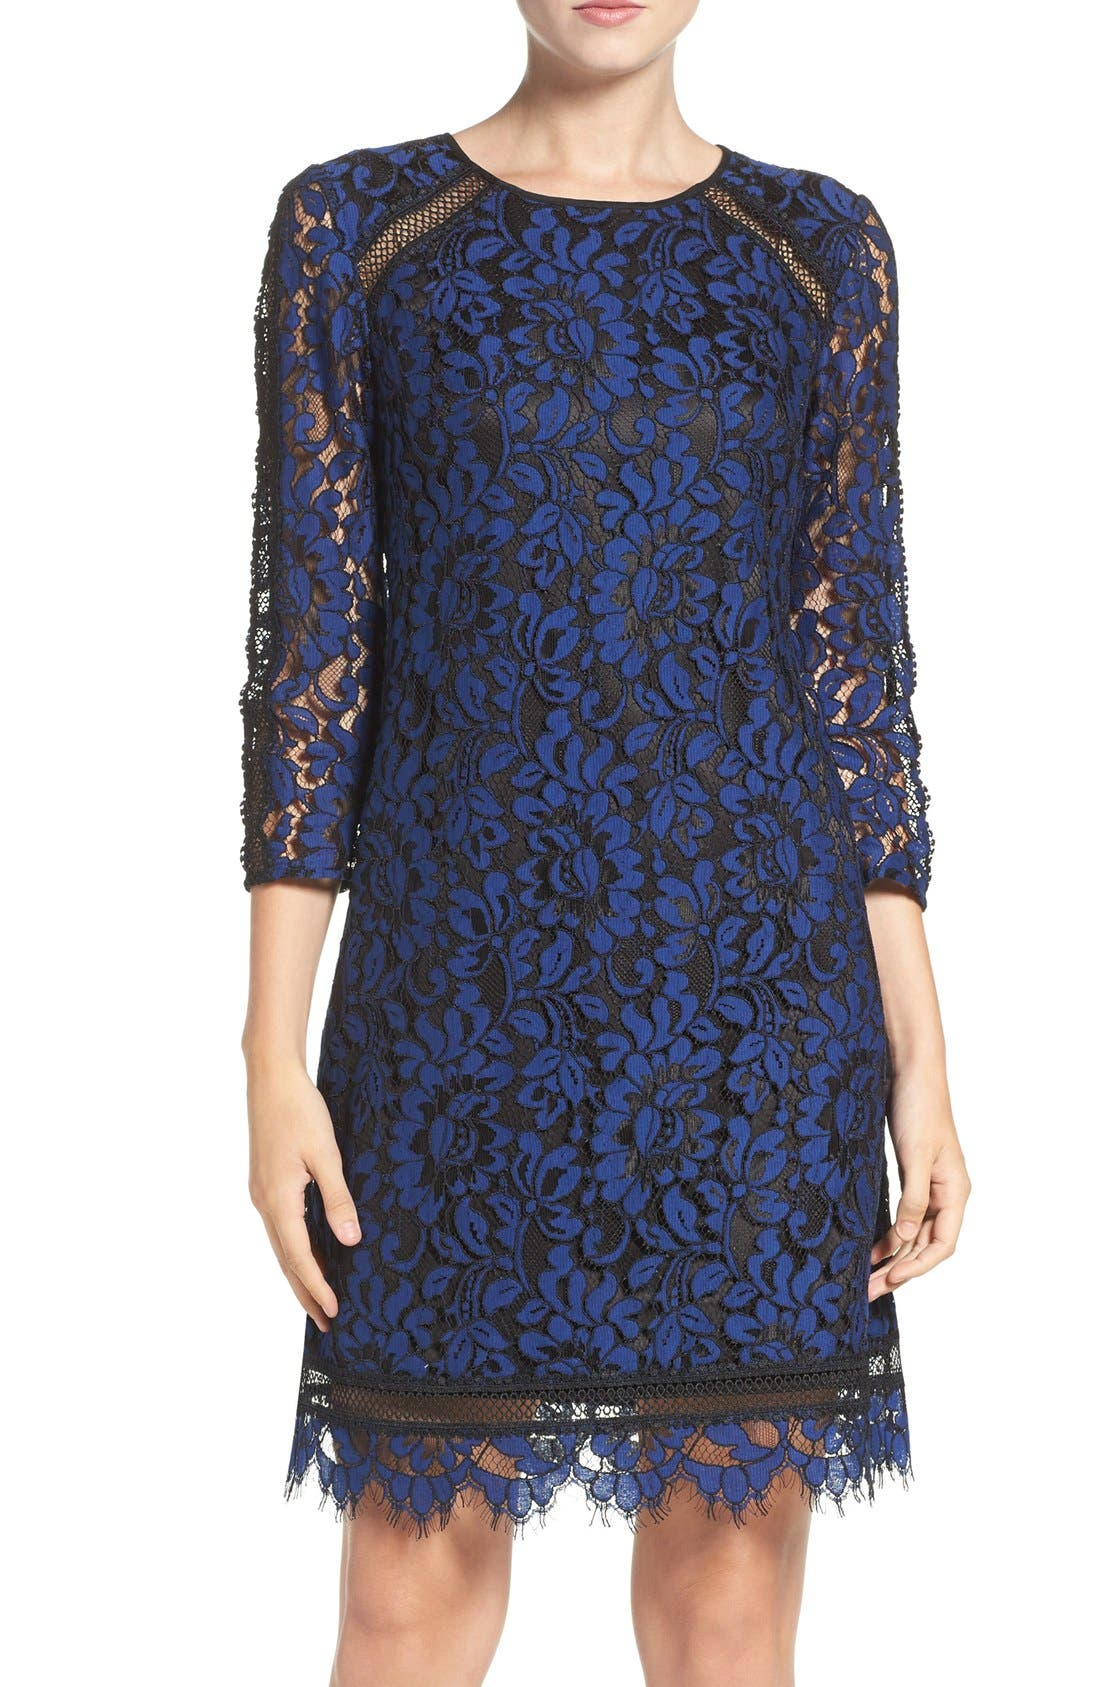 Alternate Image 1 Selected - Eliza J Inset Lace Sheath Dress (Regular & Petite)